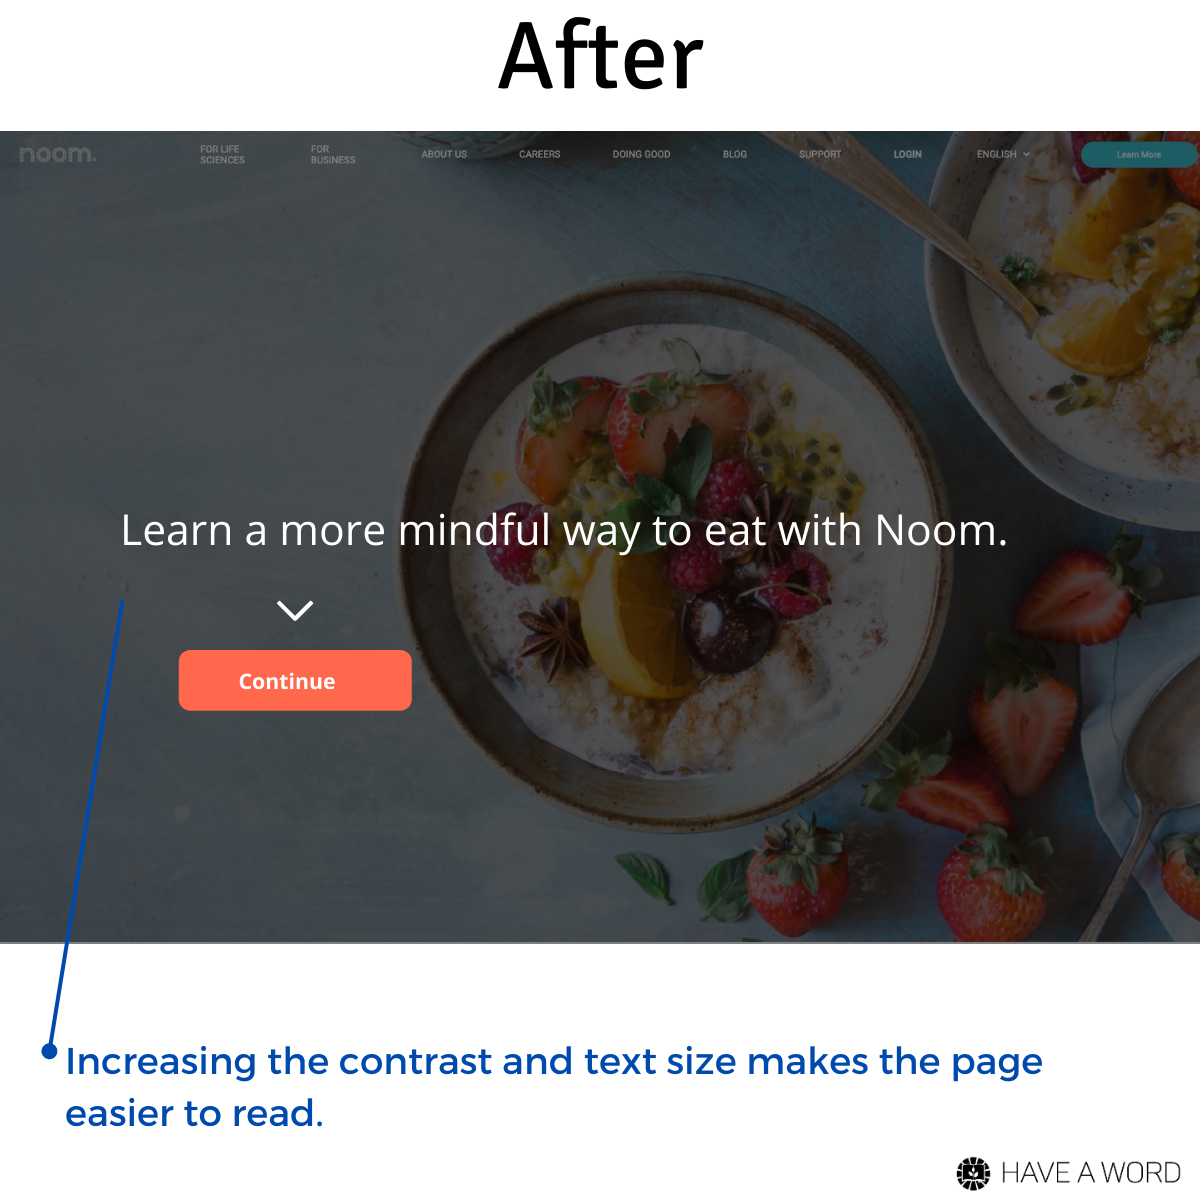 Noom's home page improvement